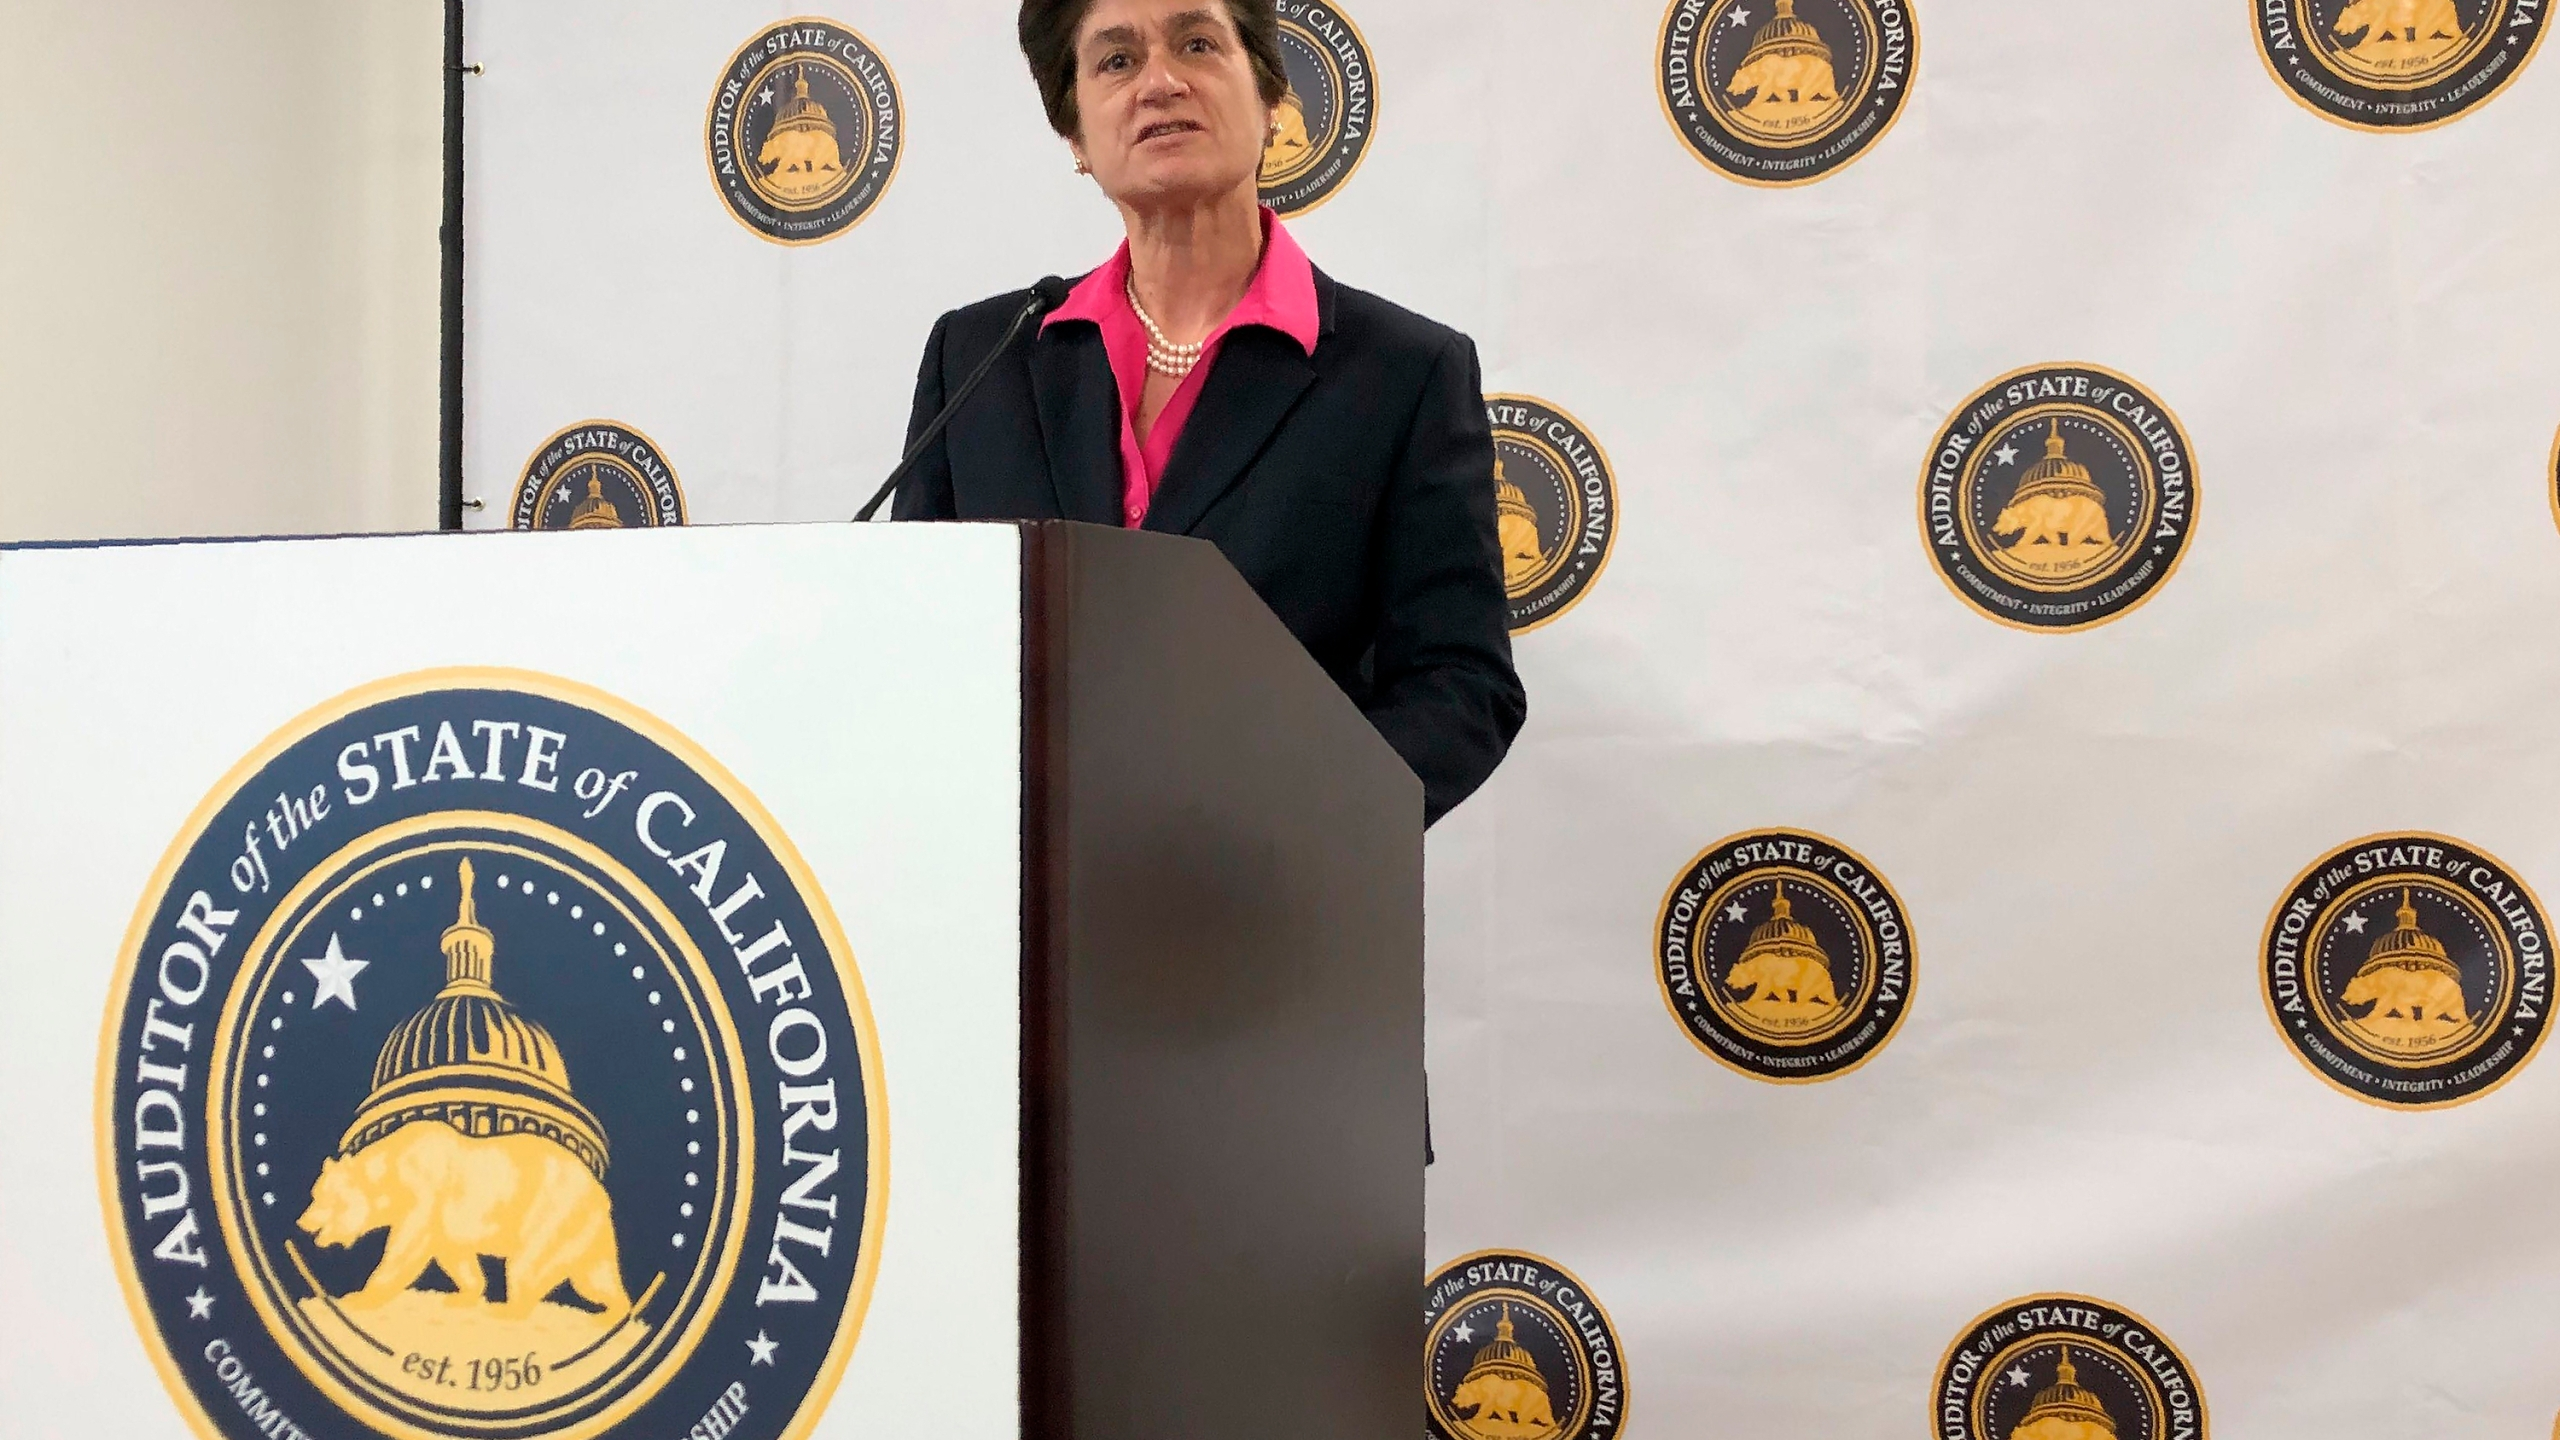 In this Oct. 24, 2019, file photo, California State Auditor Elaine Howle speaks during a news conference in Sacramento, Calif. (AP Photo/Adam Beam, File)